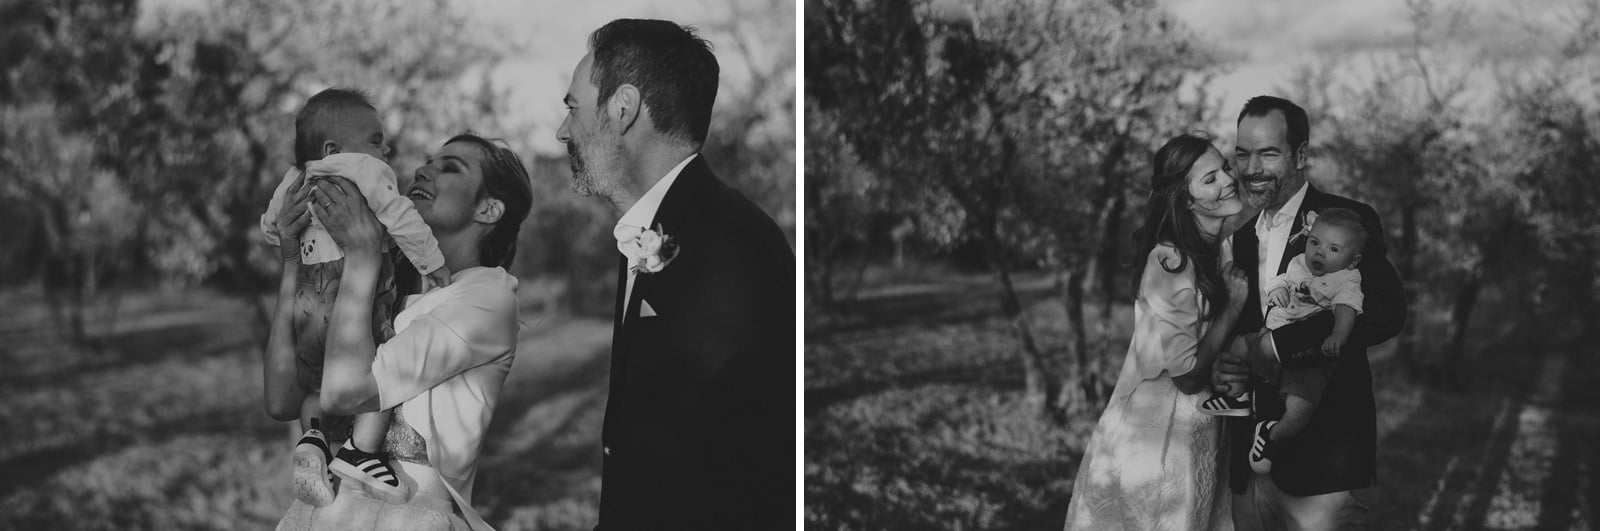 Lovely Wedding in Villa at Rignana by Federico Pannacci Wedding Photographer 84